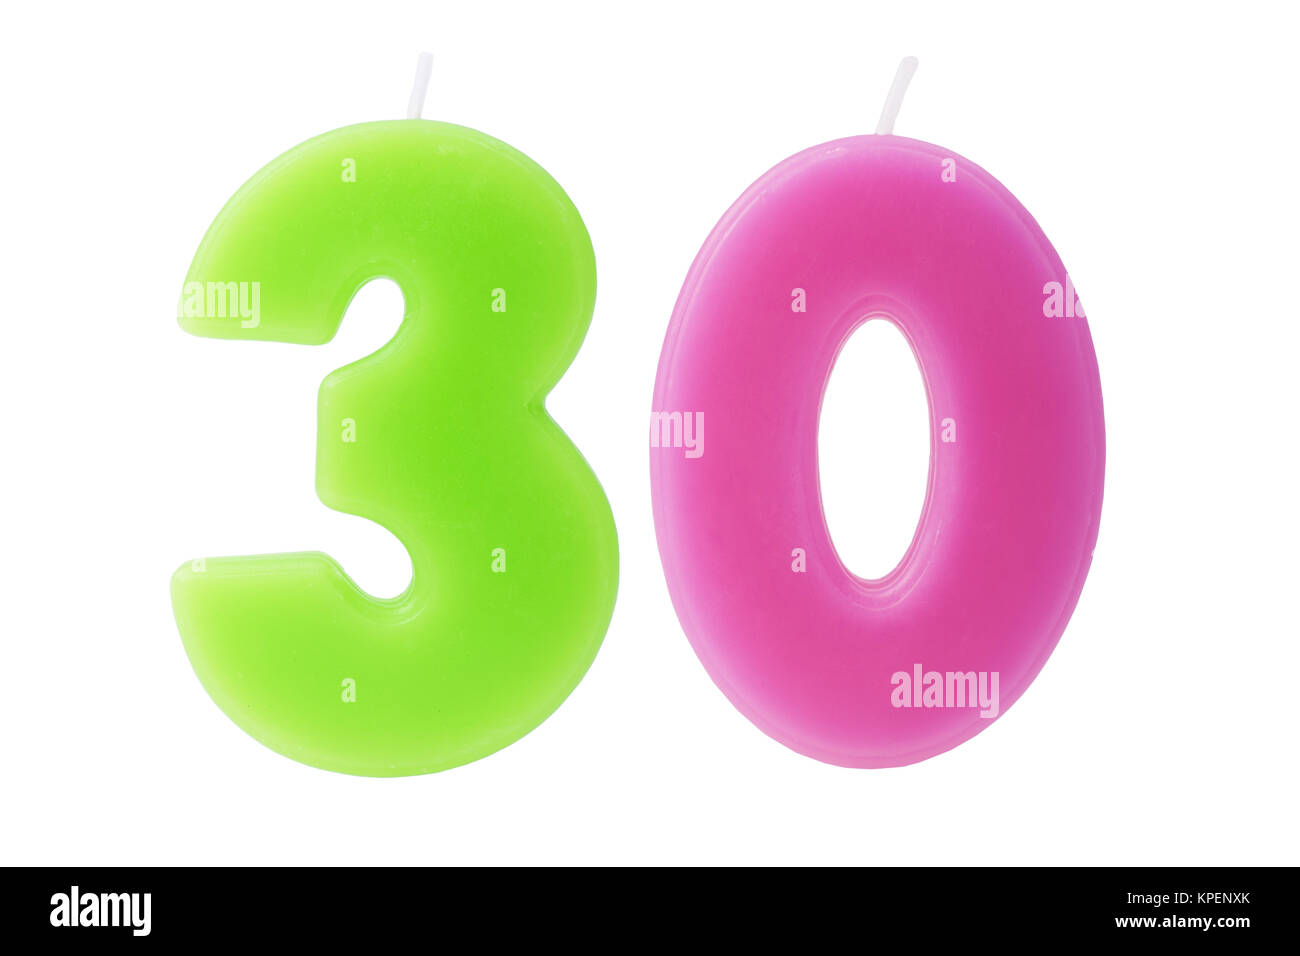 30th birthday candles isolated - Stock Image